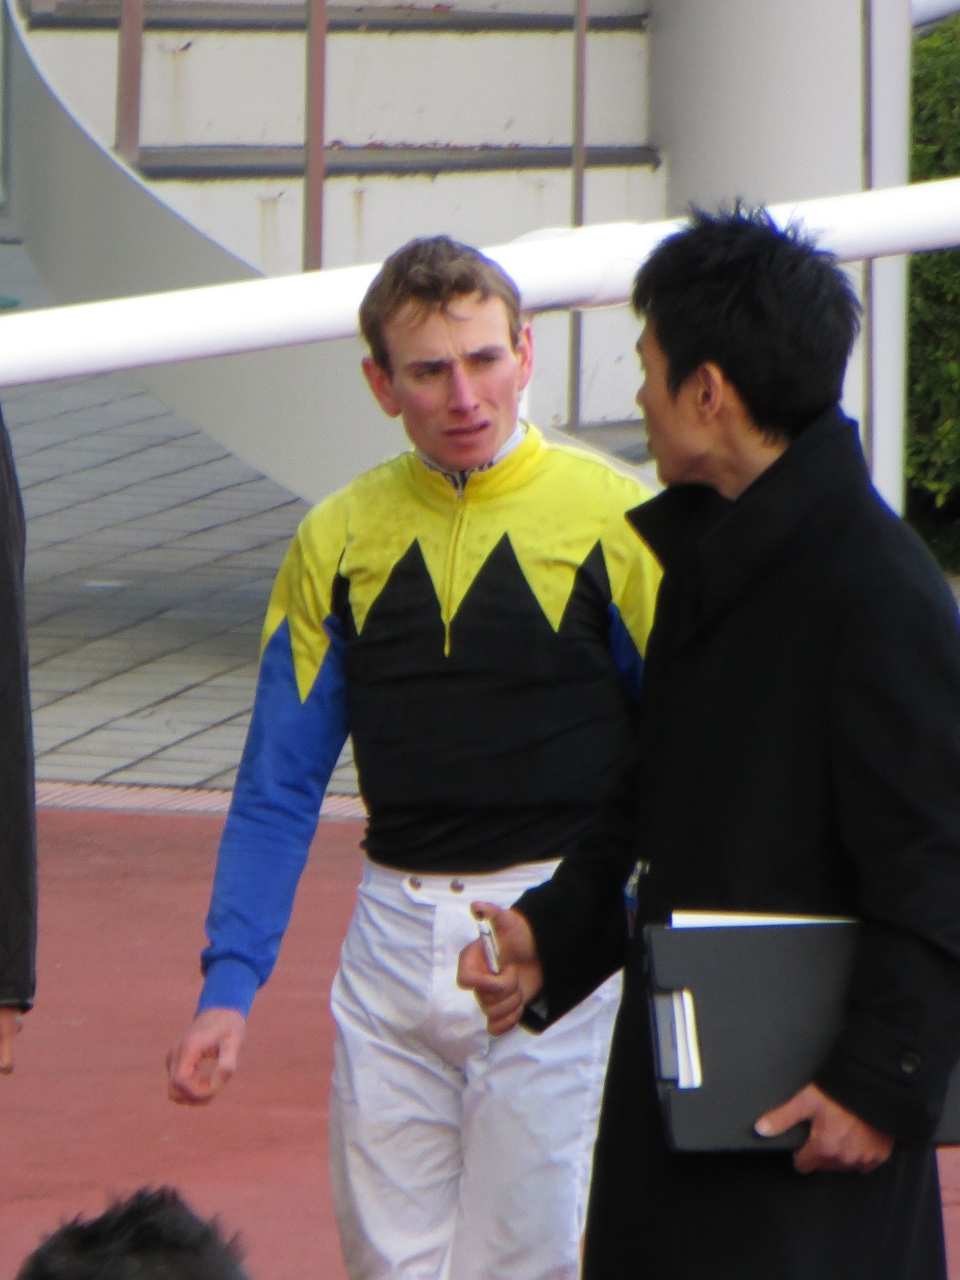 Ryan Moore Jockey Wikipedia